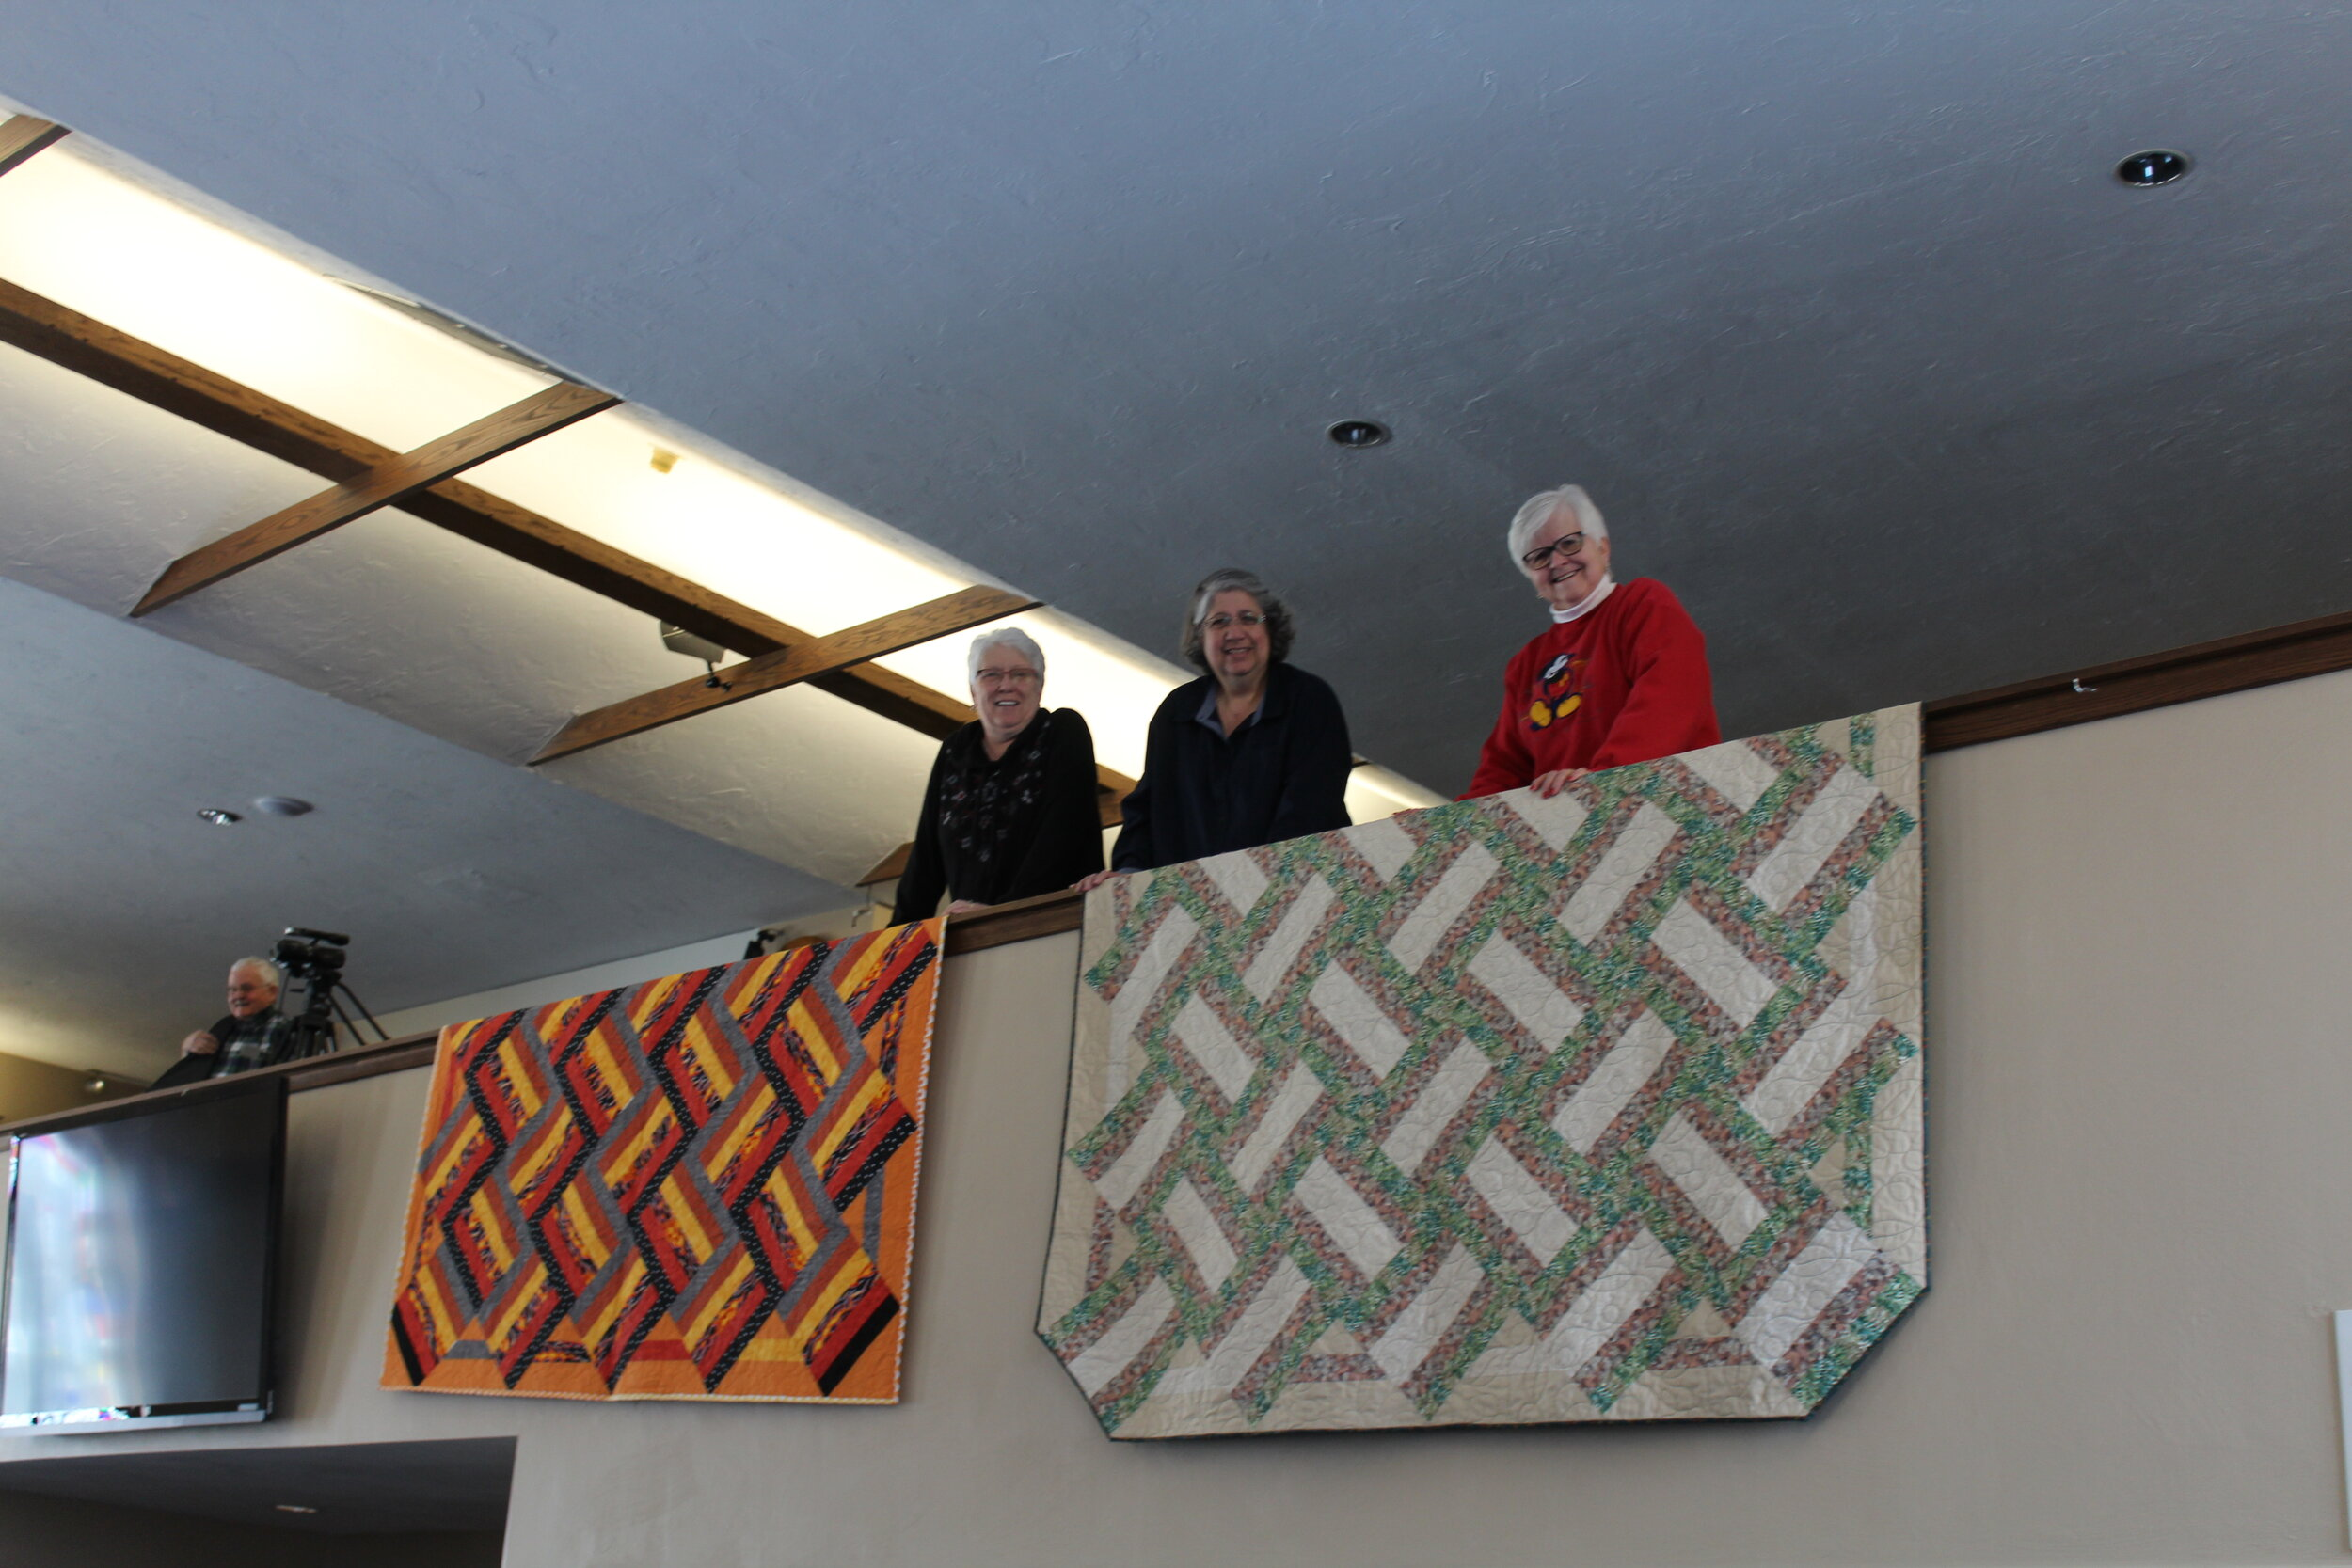 Jan Andree, Barb Barnett, and Louise Warner display quilts to be blessed at worship services before delivery to the young people at MHY.